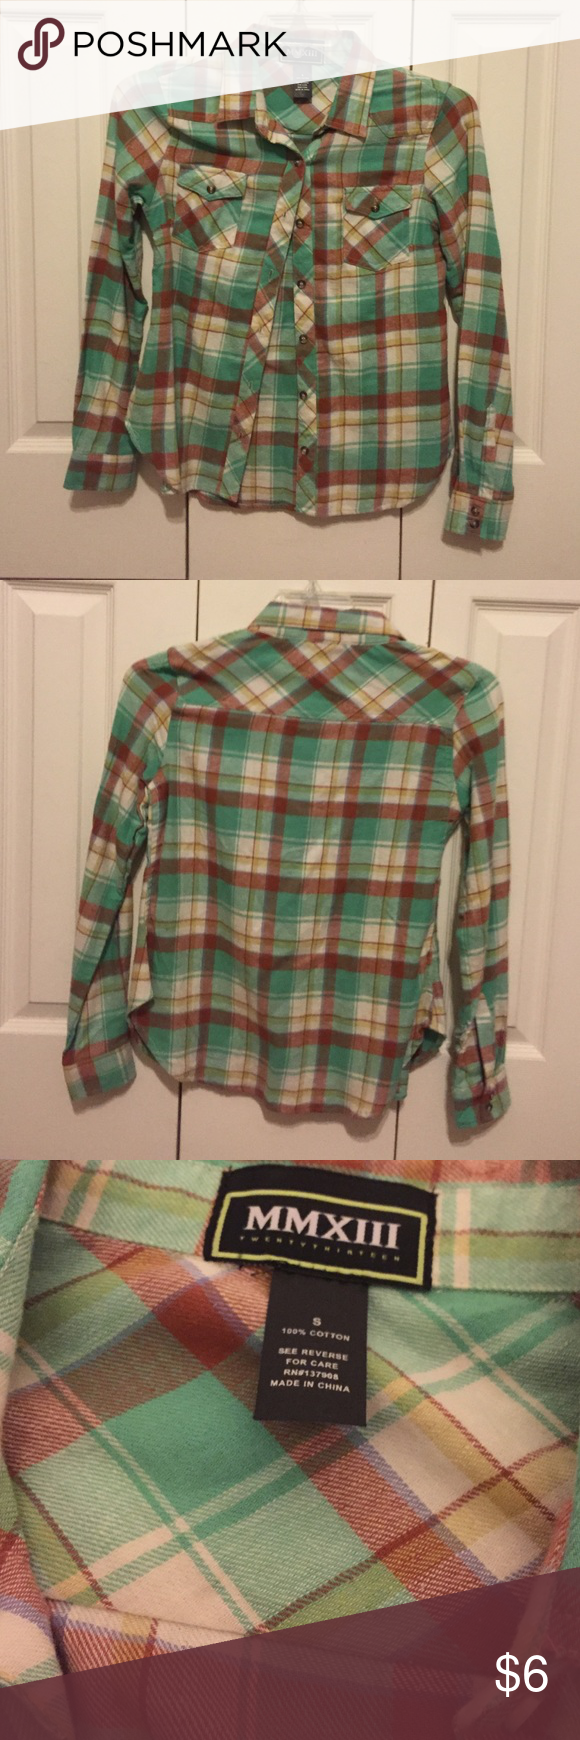 Flannel Long Sleeve Top comfy and in good condition! size small! Two button pockets on front, 100% cotton. MMXIII Tops